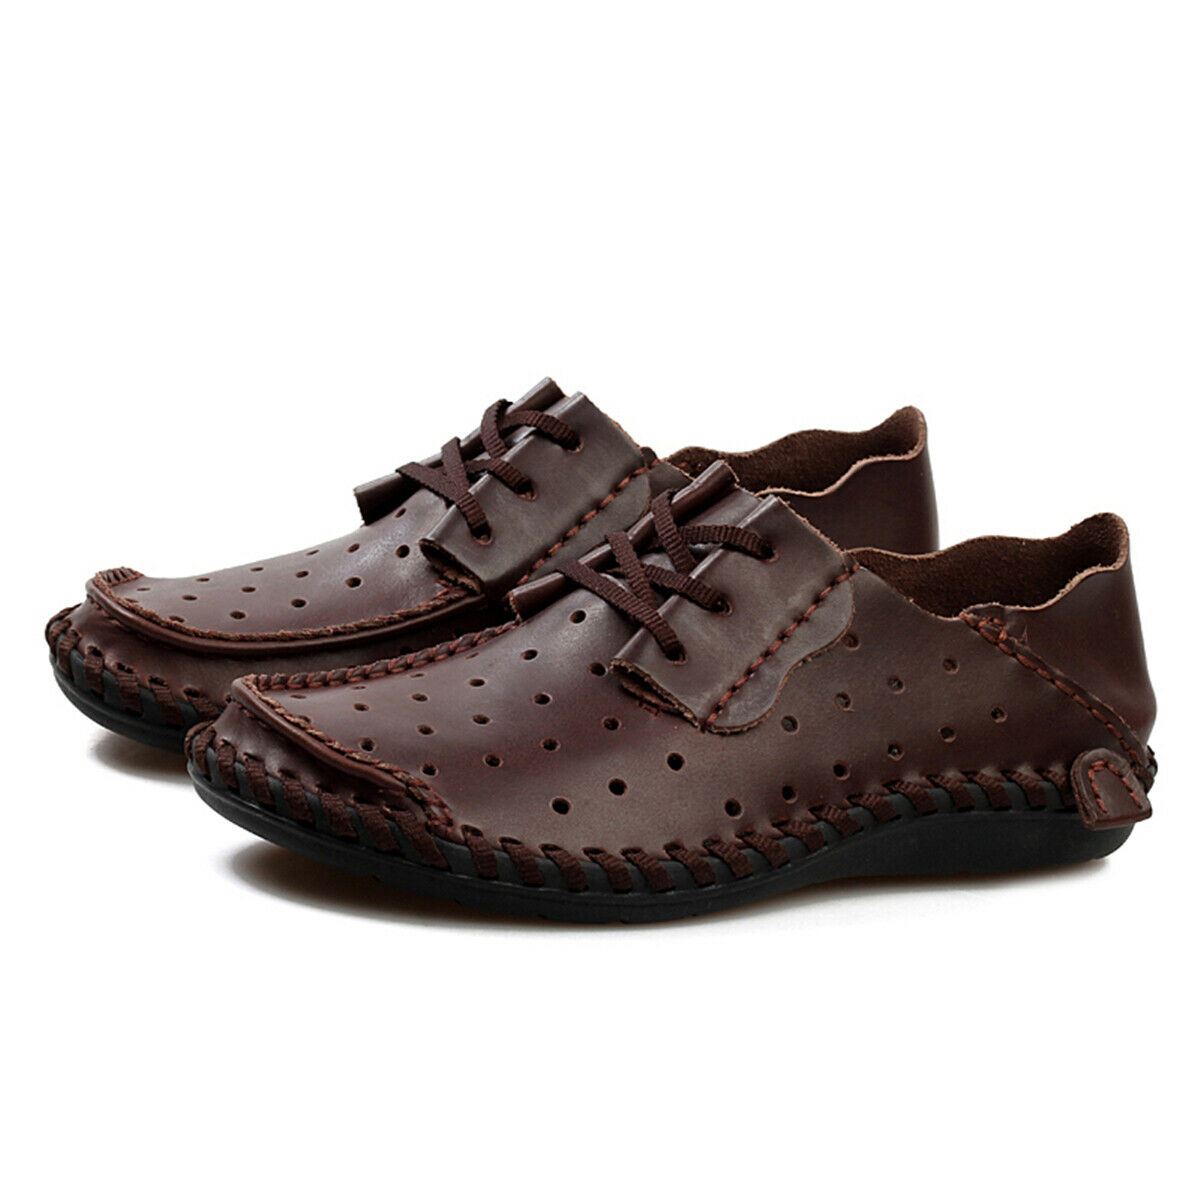 Mens Loafers shoes Driving shoes Casual Cowhide Moccasins Leather Slip On Sheos